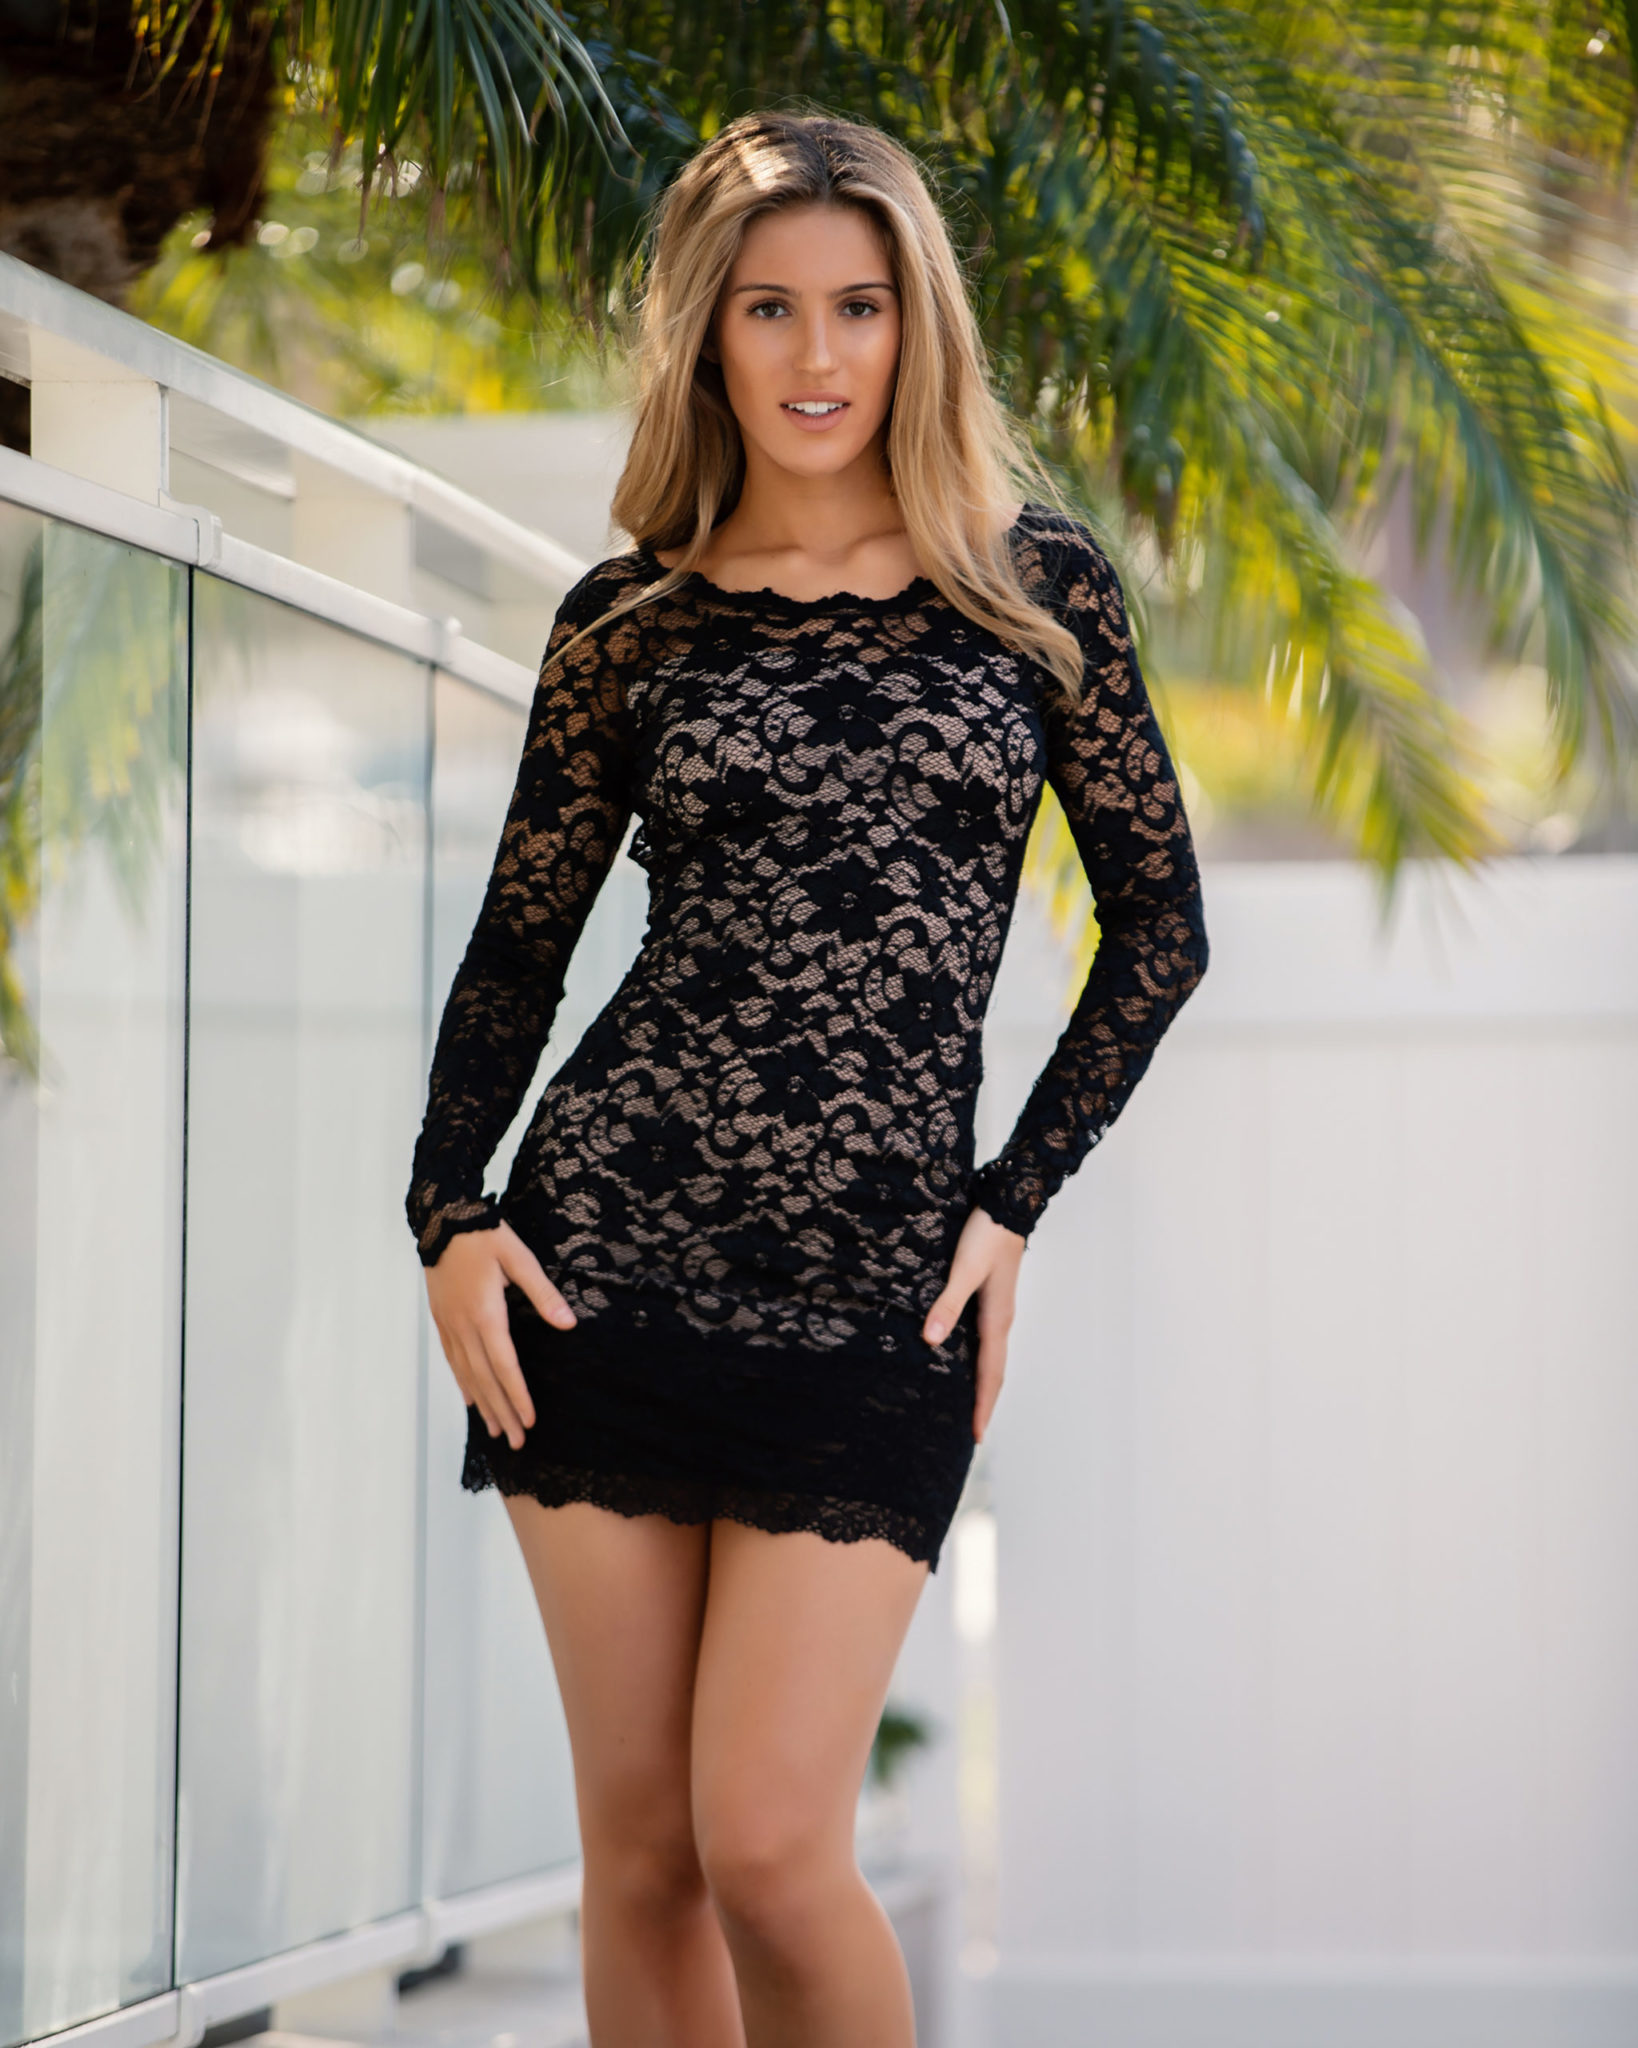 Back in black: This form-fitting, feminine piece in stretch lace material features a boat-shaped neck in front and a deep cut in the back; the dress is finished around the edges with lace scallops. (Model: Chloe Leonik)